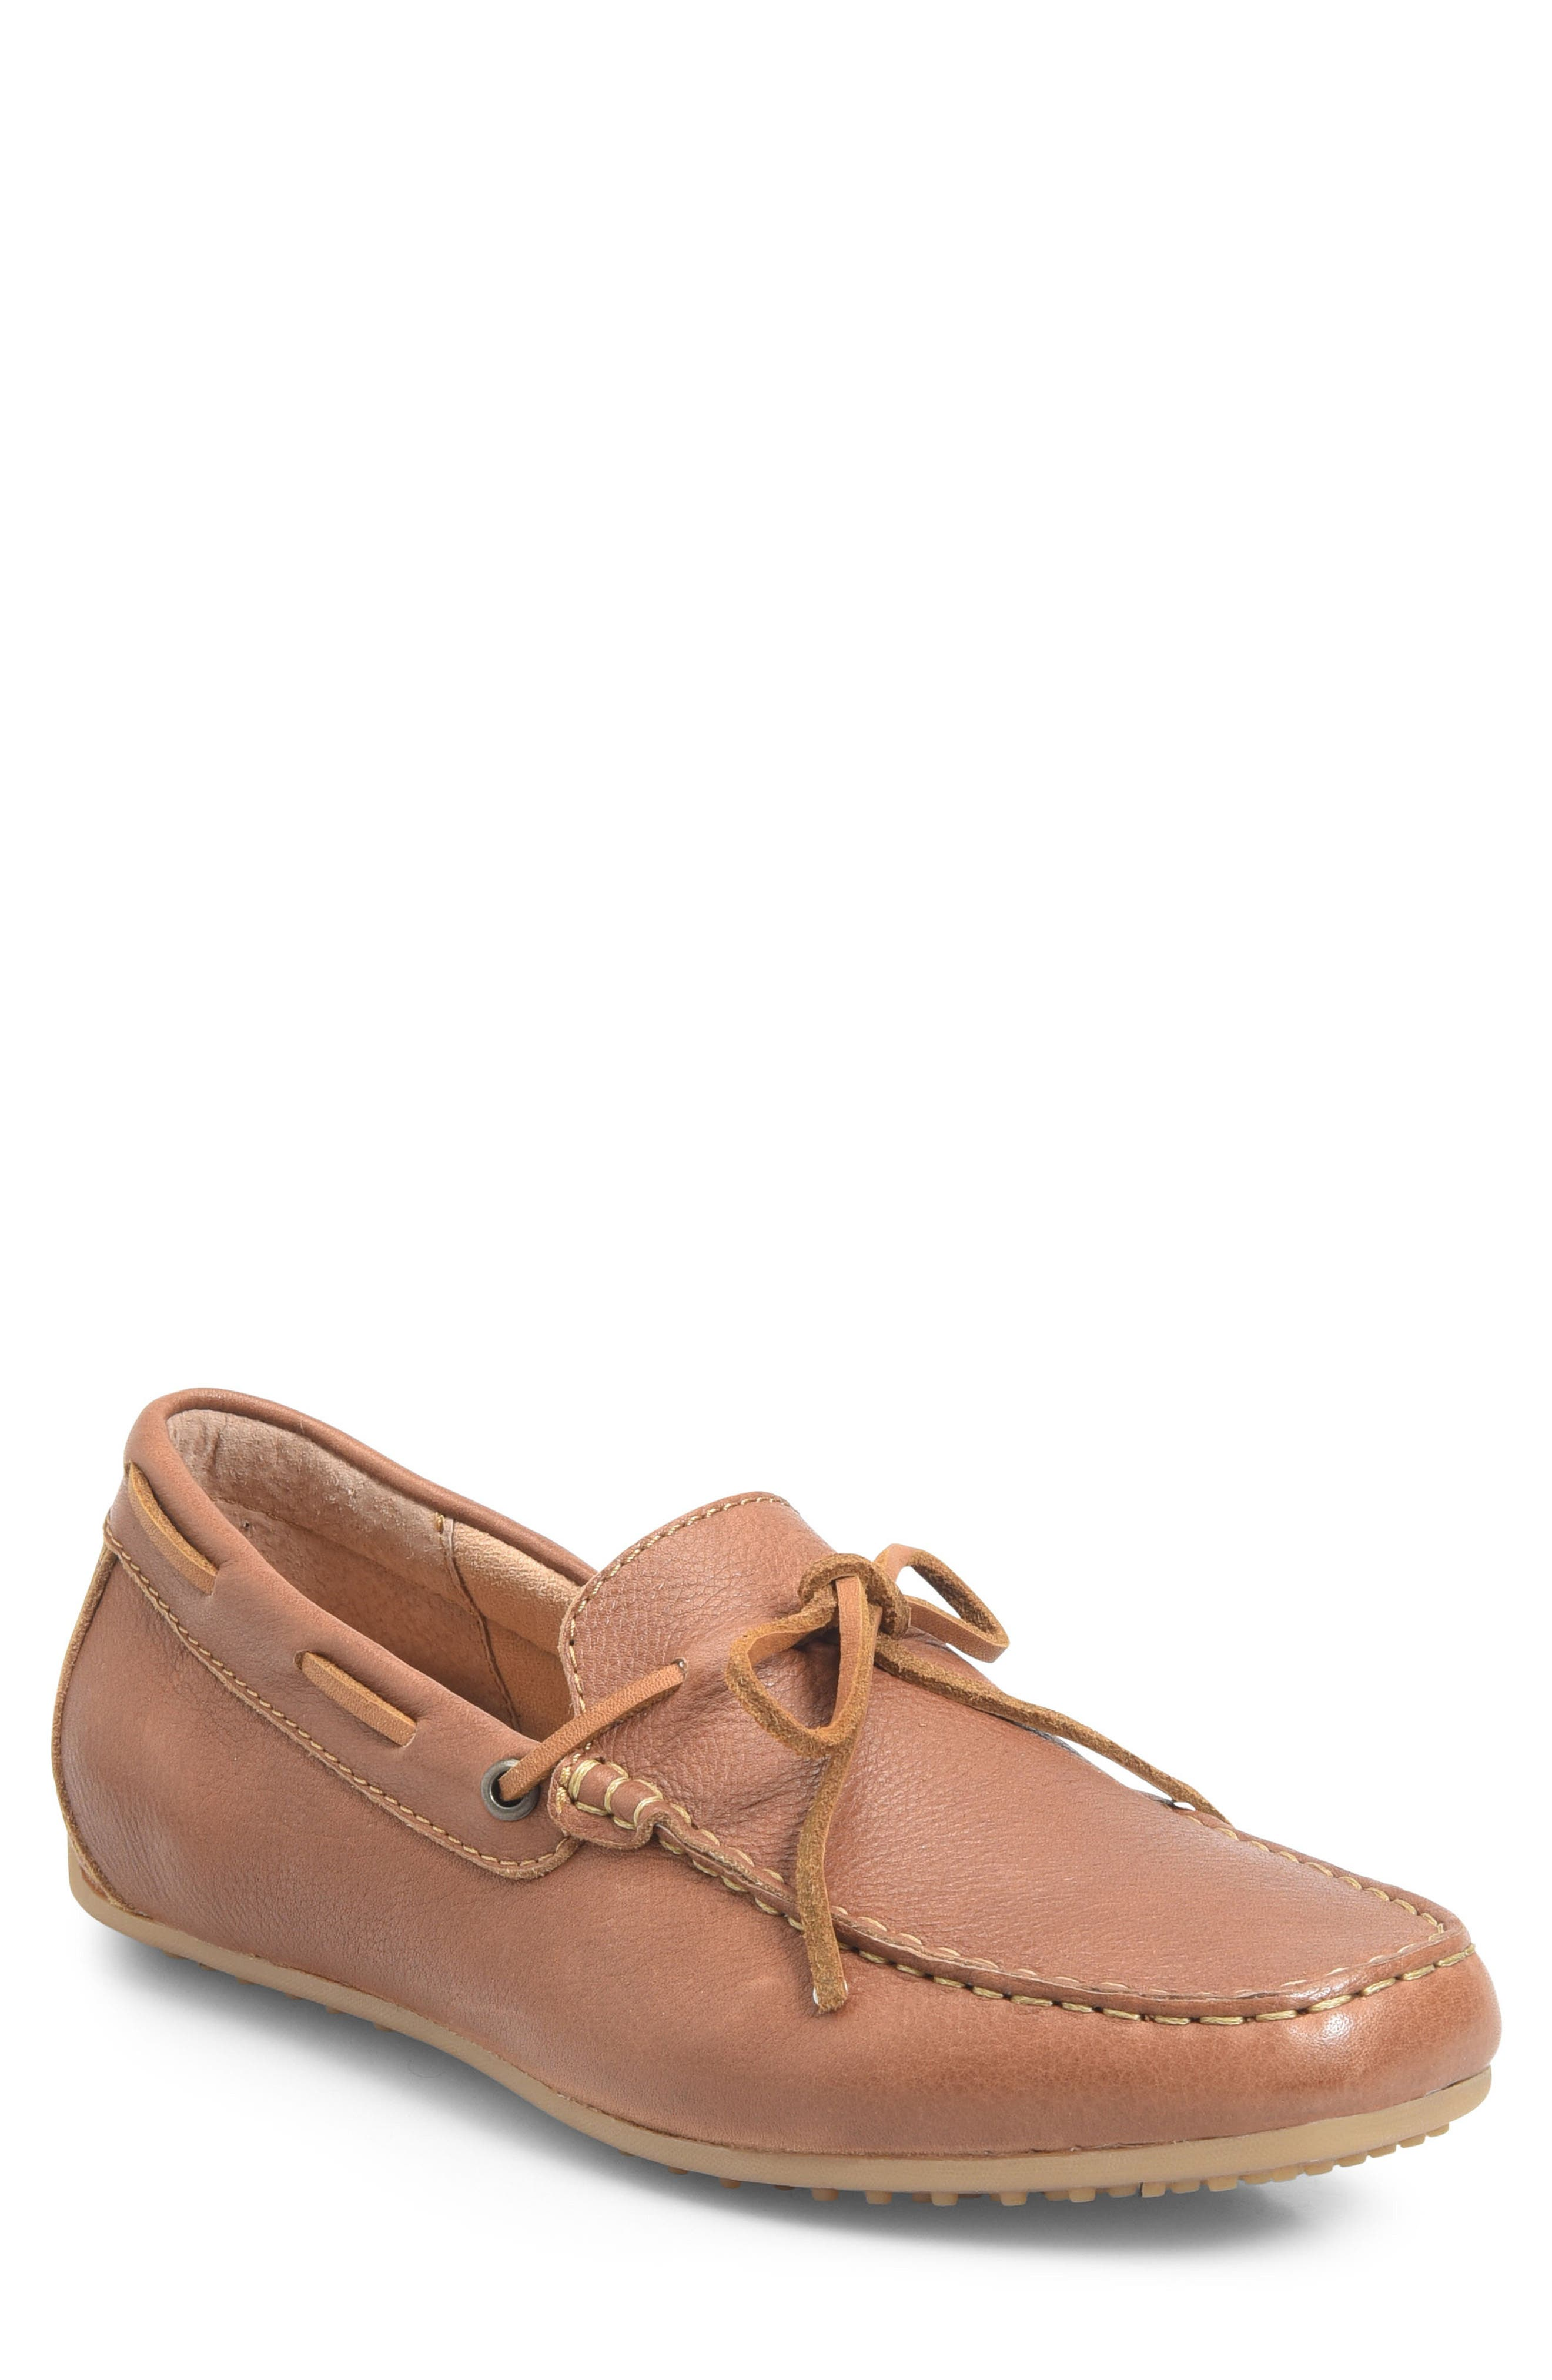 Virgo Driving Shoe,                             Main thumbnail 1, color,                             BROWN LEATHER